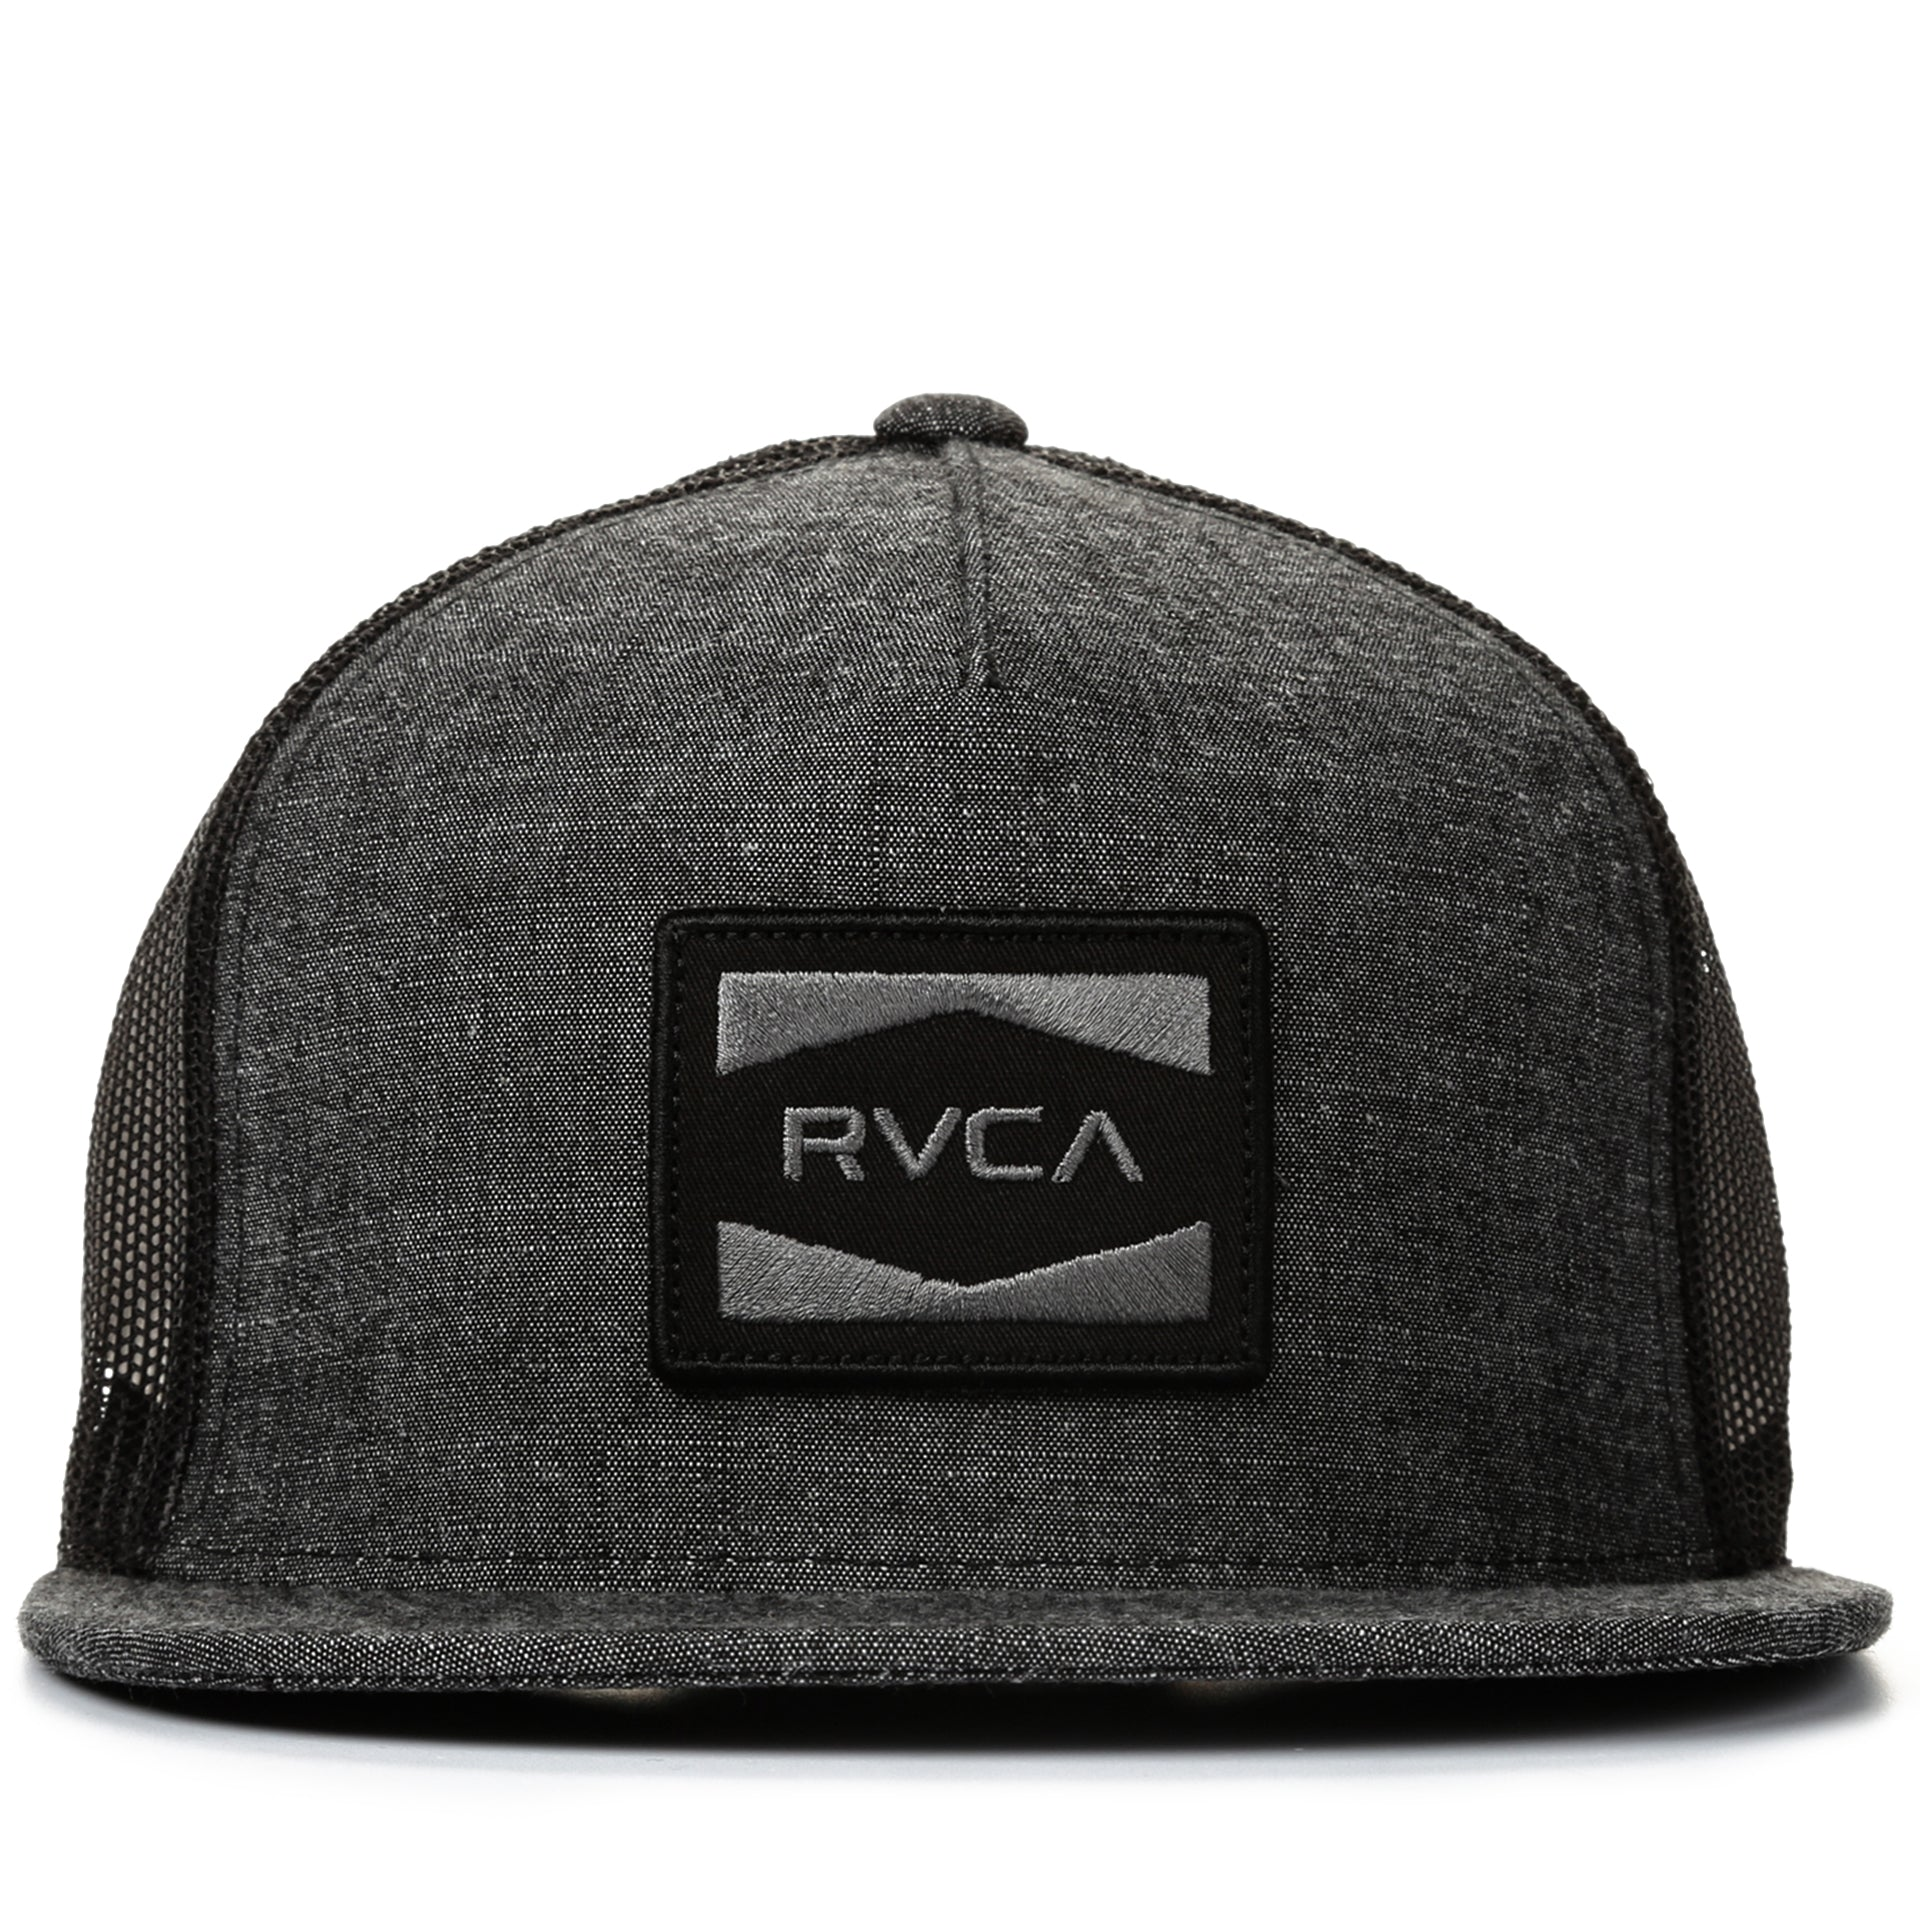 7899d0a6ce7c4a RVCA Cedars Trucker Hat - Black Denim - New Star